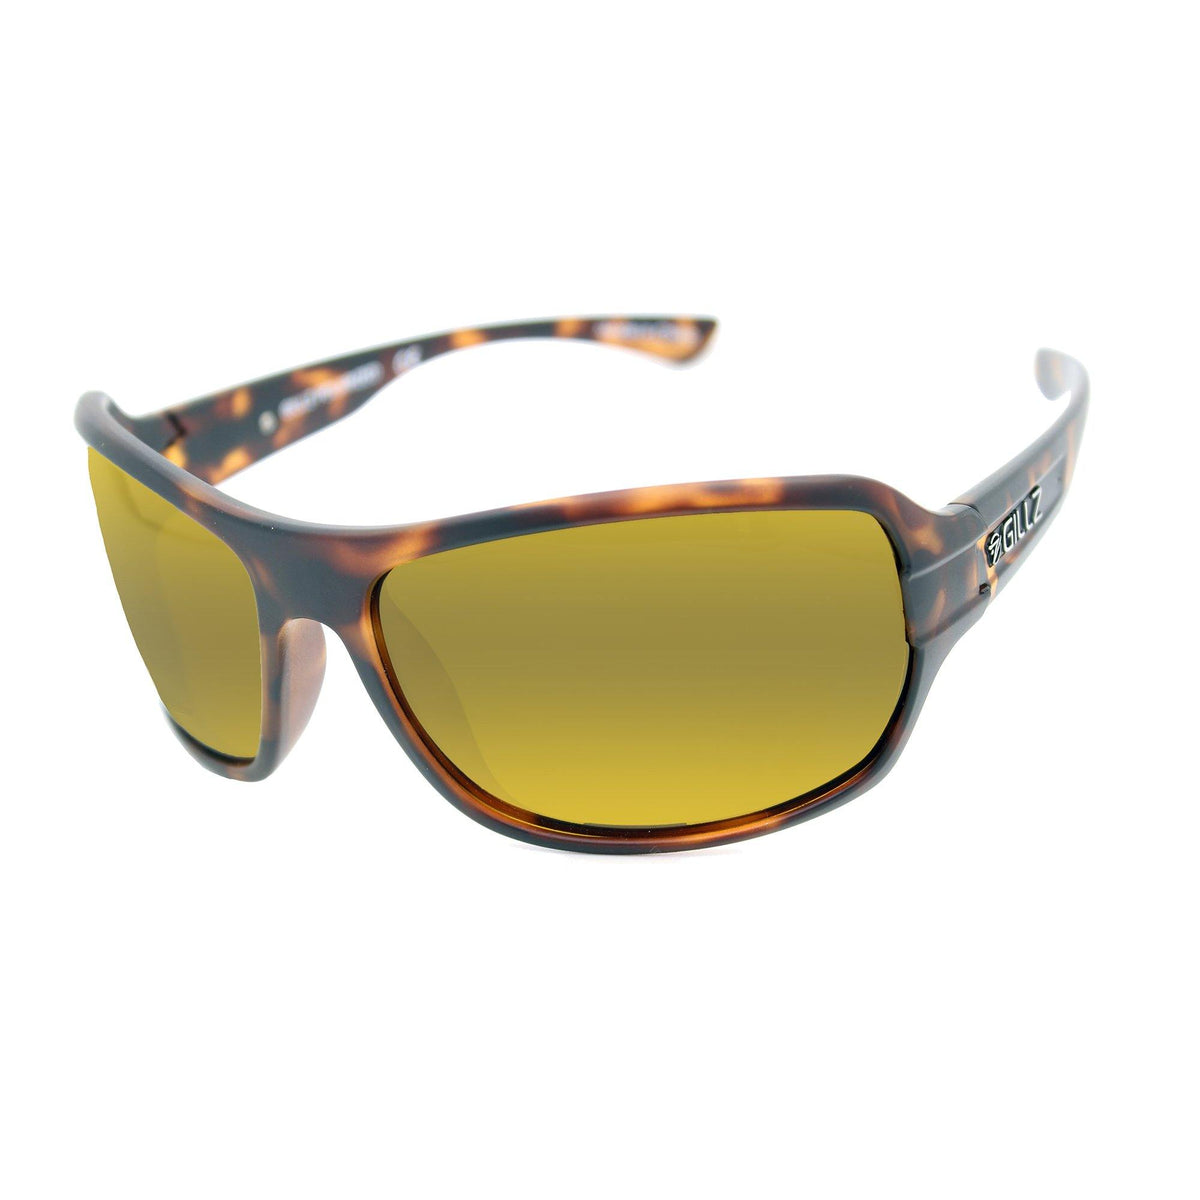 Jerkbait 102 Sunglasses - Sunrise Lens - Gillz